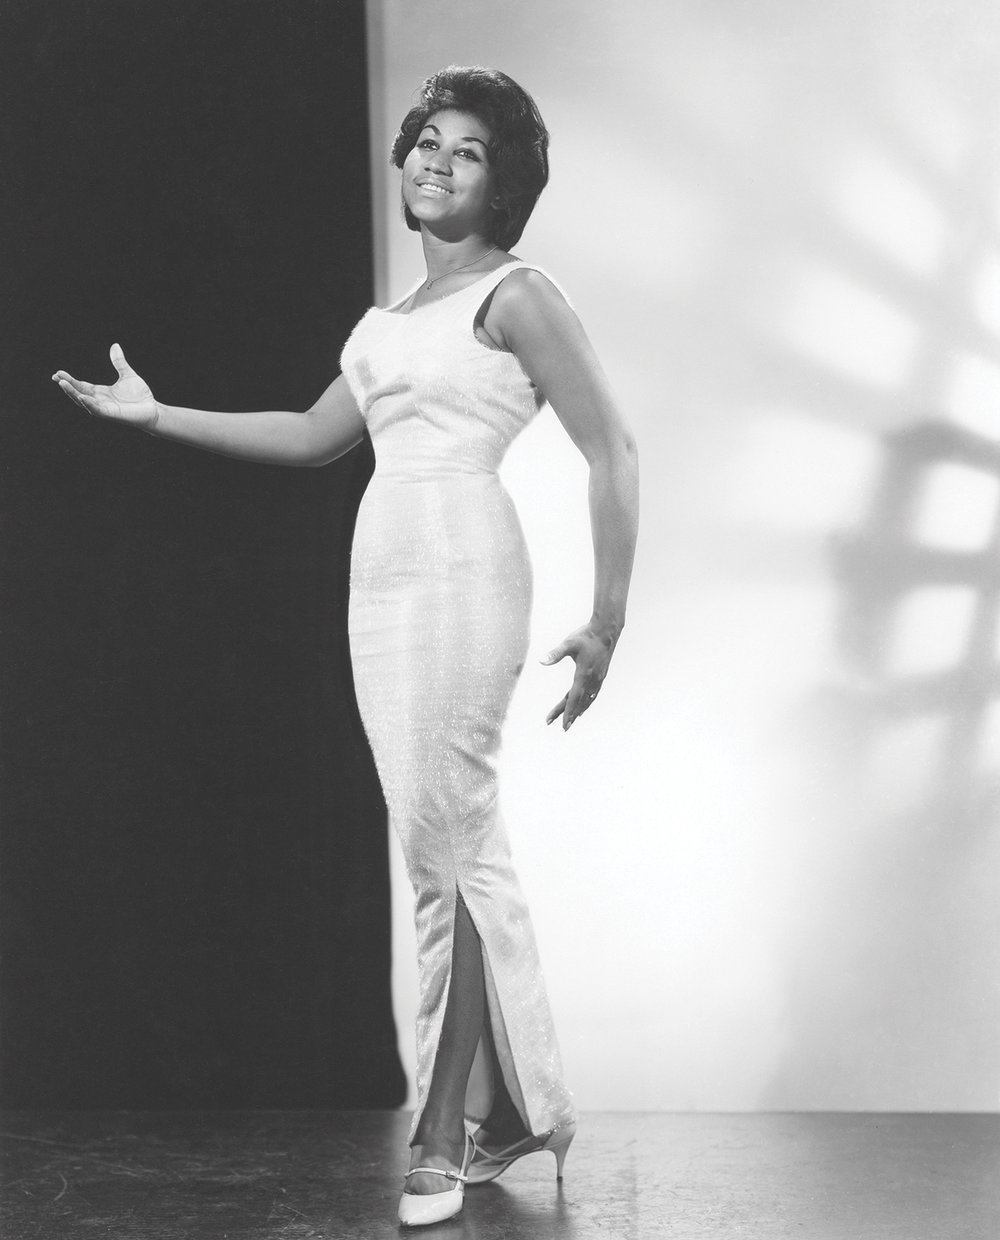 Many of the tributes to Franklin since her passing have emphasized not only her musical talent but her role in shaping and empowering the role of women with songs that gave voice to life experiences from a decidedly female perspective.